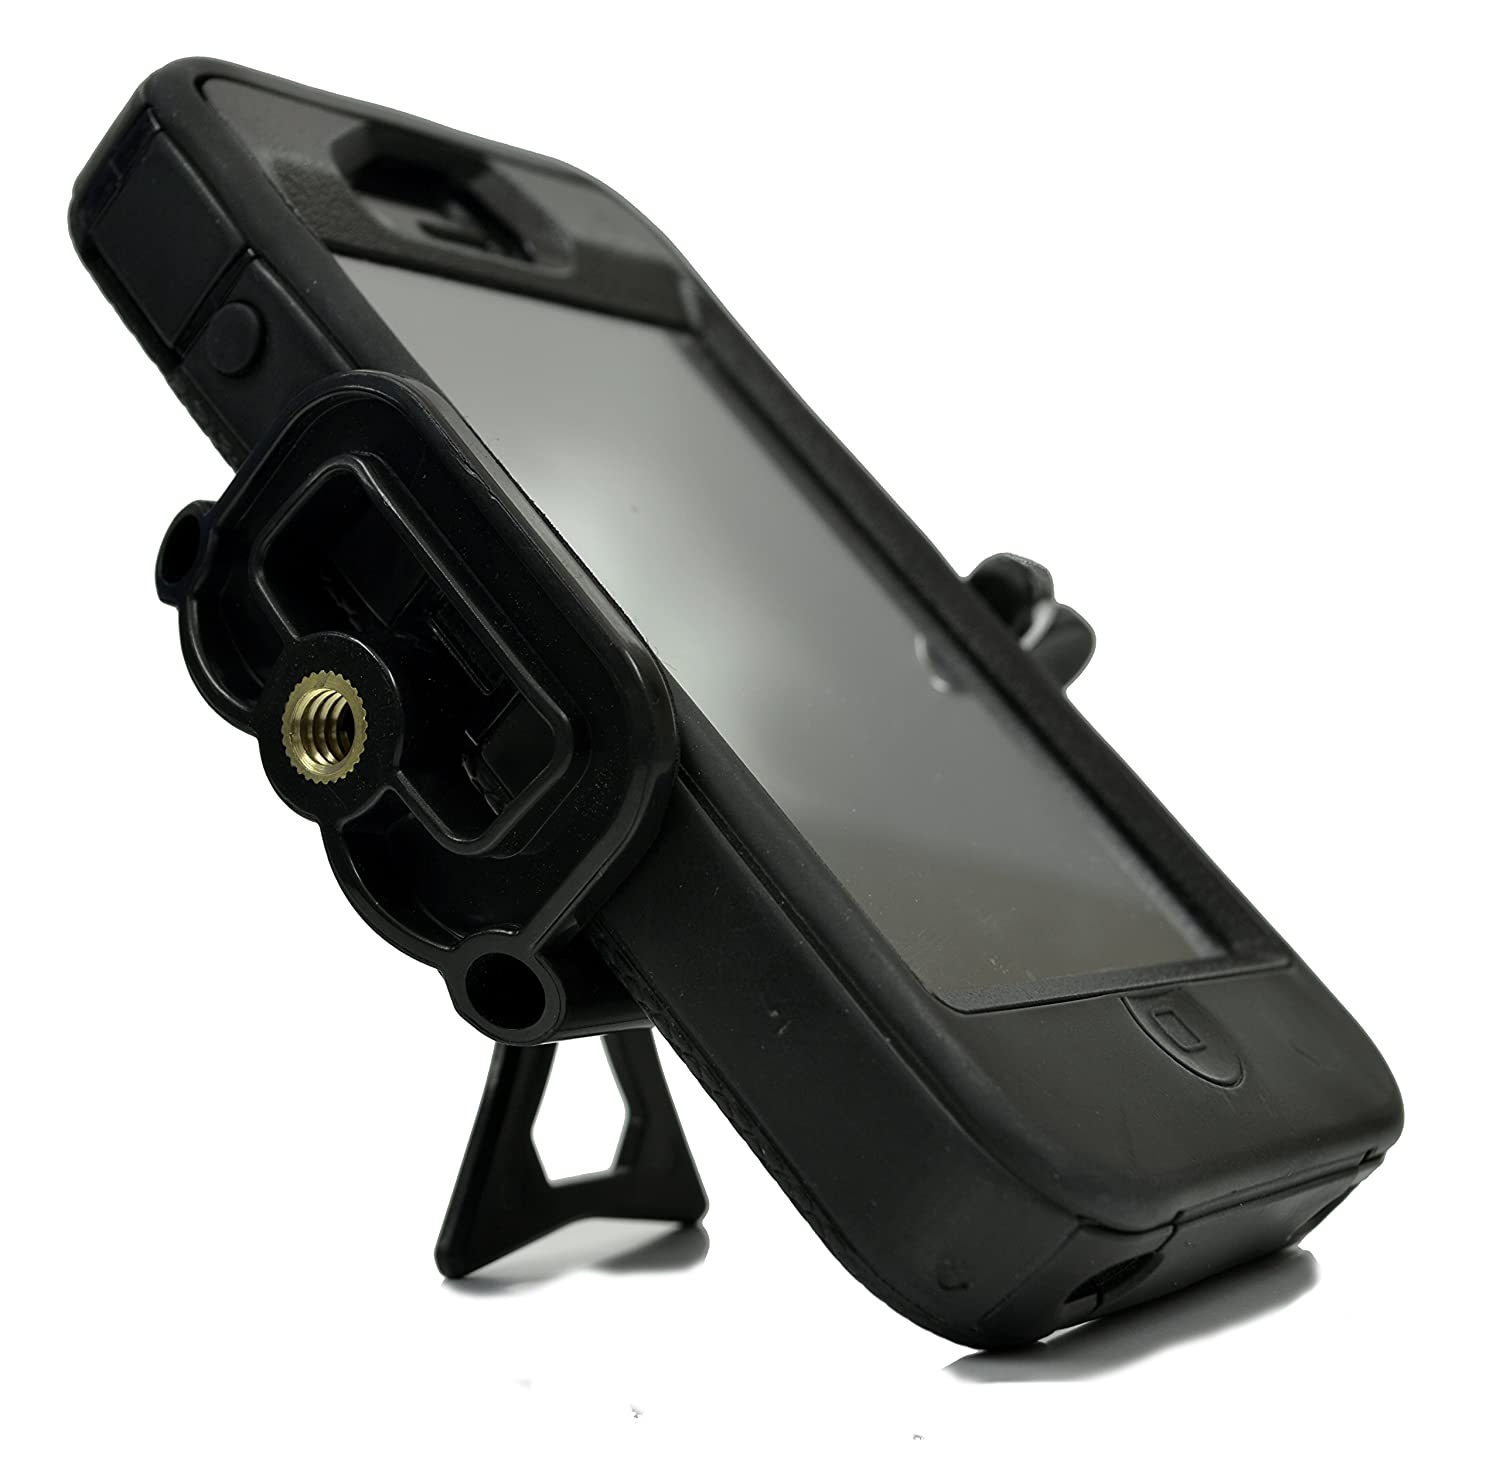 mazon.com: ell Phone ripod dapter Mount and Desk Stand Holder ... - ^